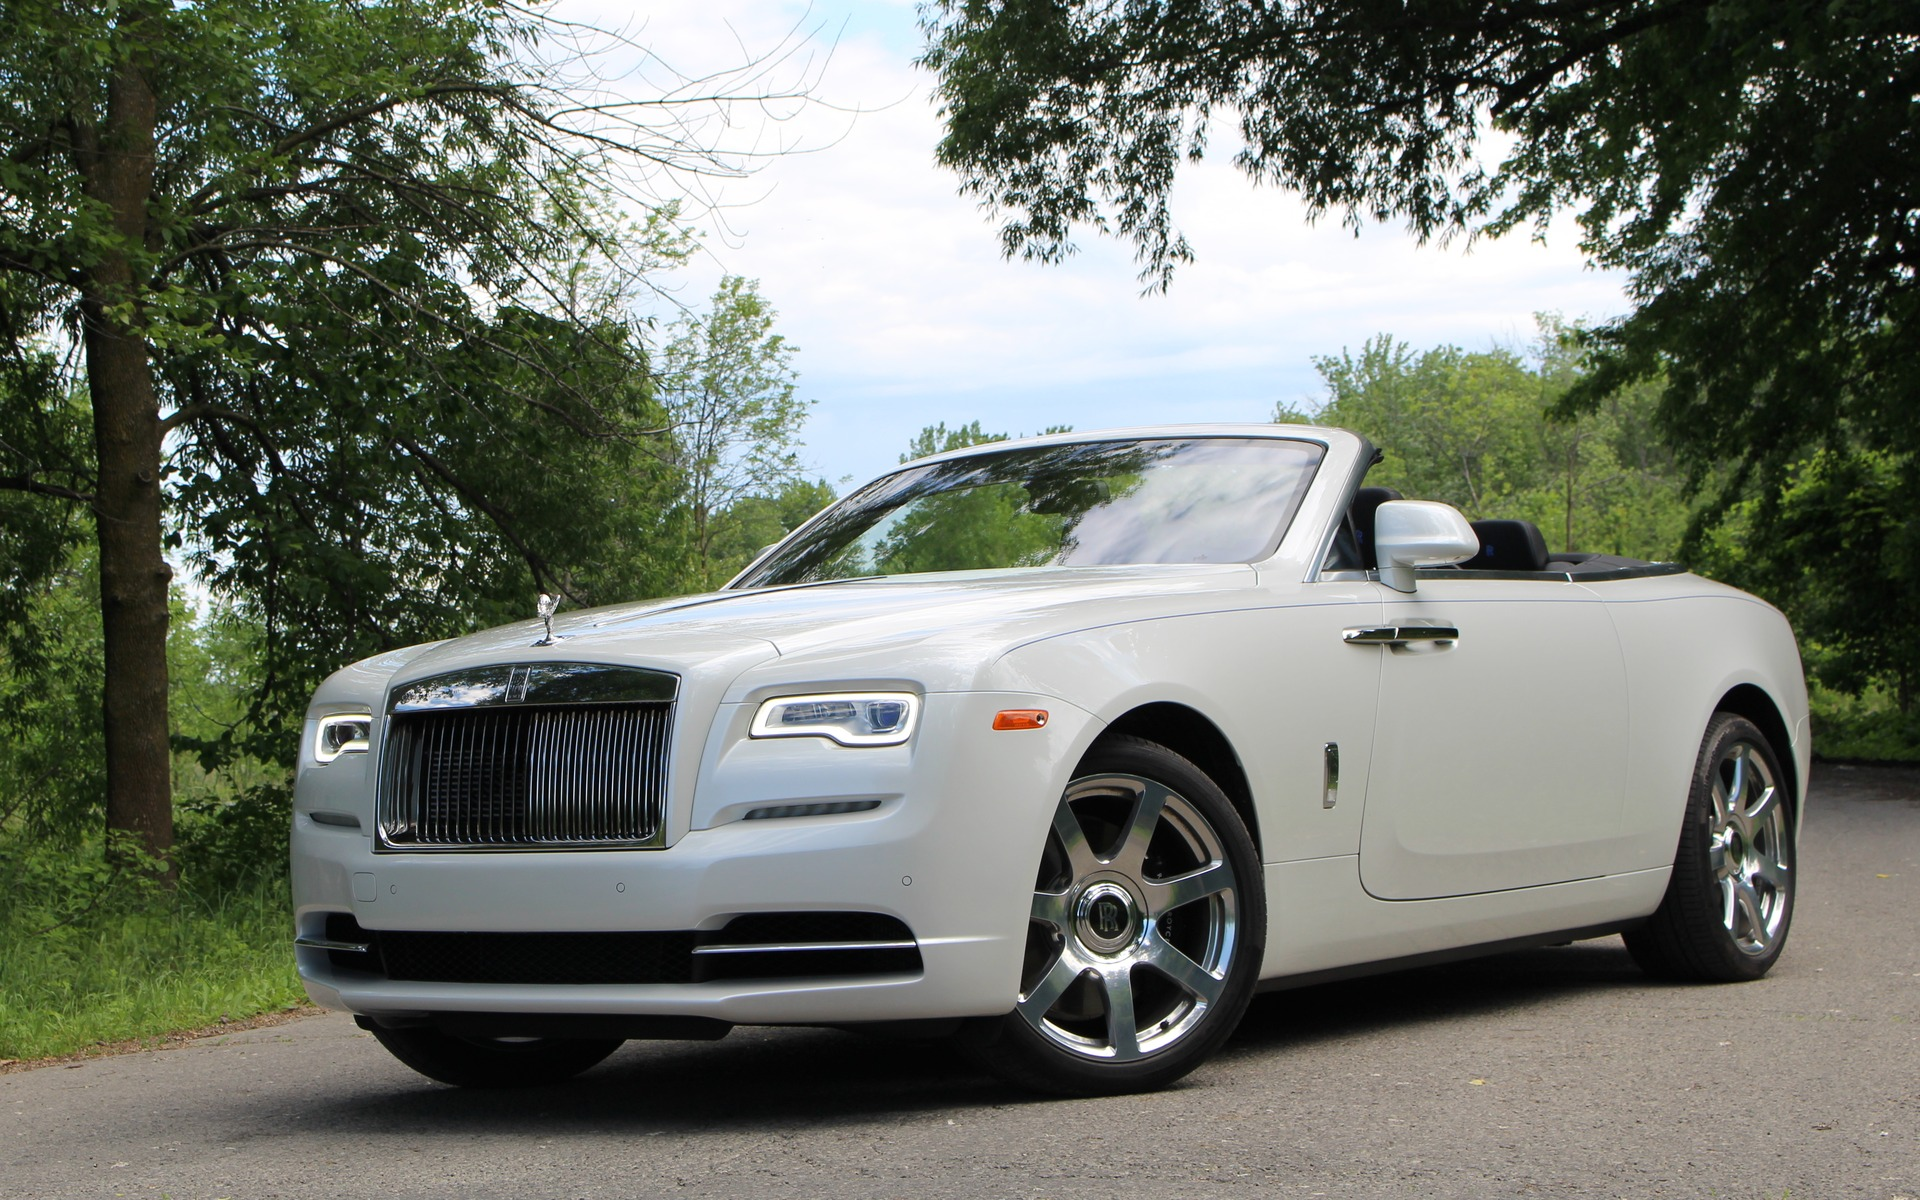 2017 rolls royce dawn ultimate top down motoring the car guide. Black Bedroom Furniture Sets. Home Design Ideas